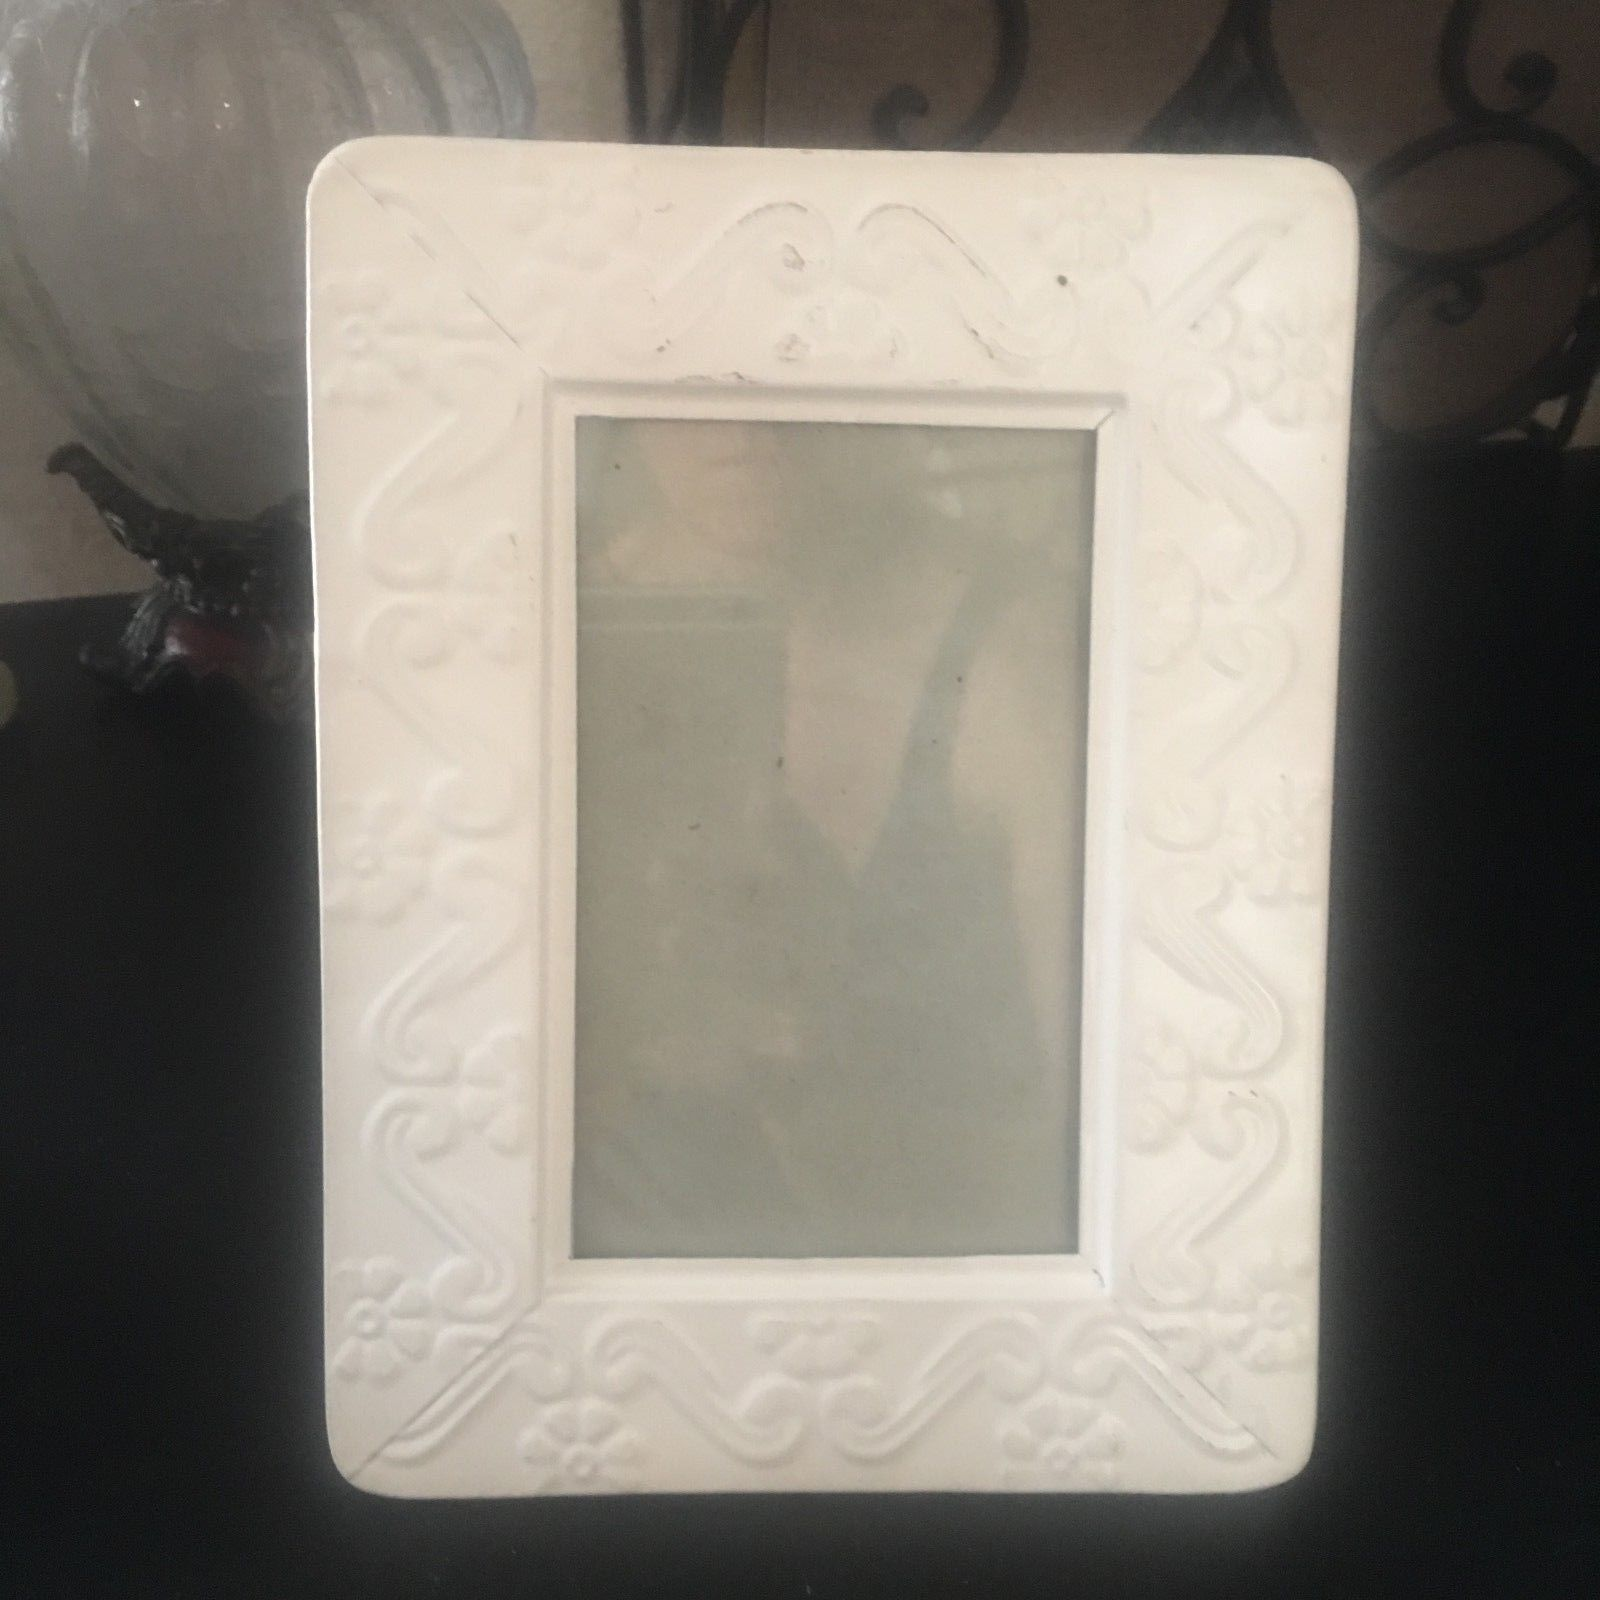 "SHABBY CHIC White Metal Picture Frame 8"" x 6"" VINTAGE Farm House FRENCH COUNTRY image 2"